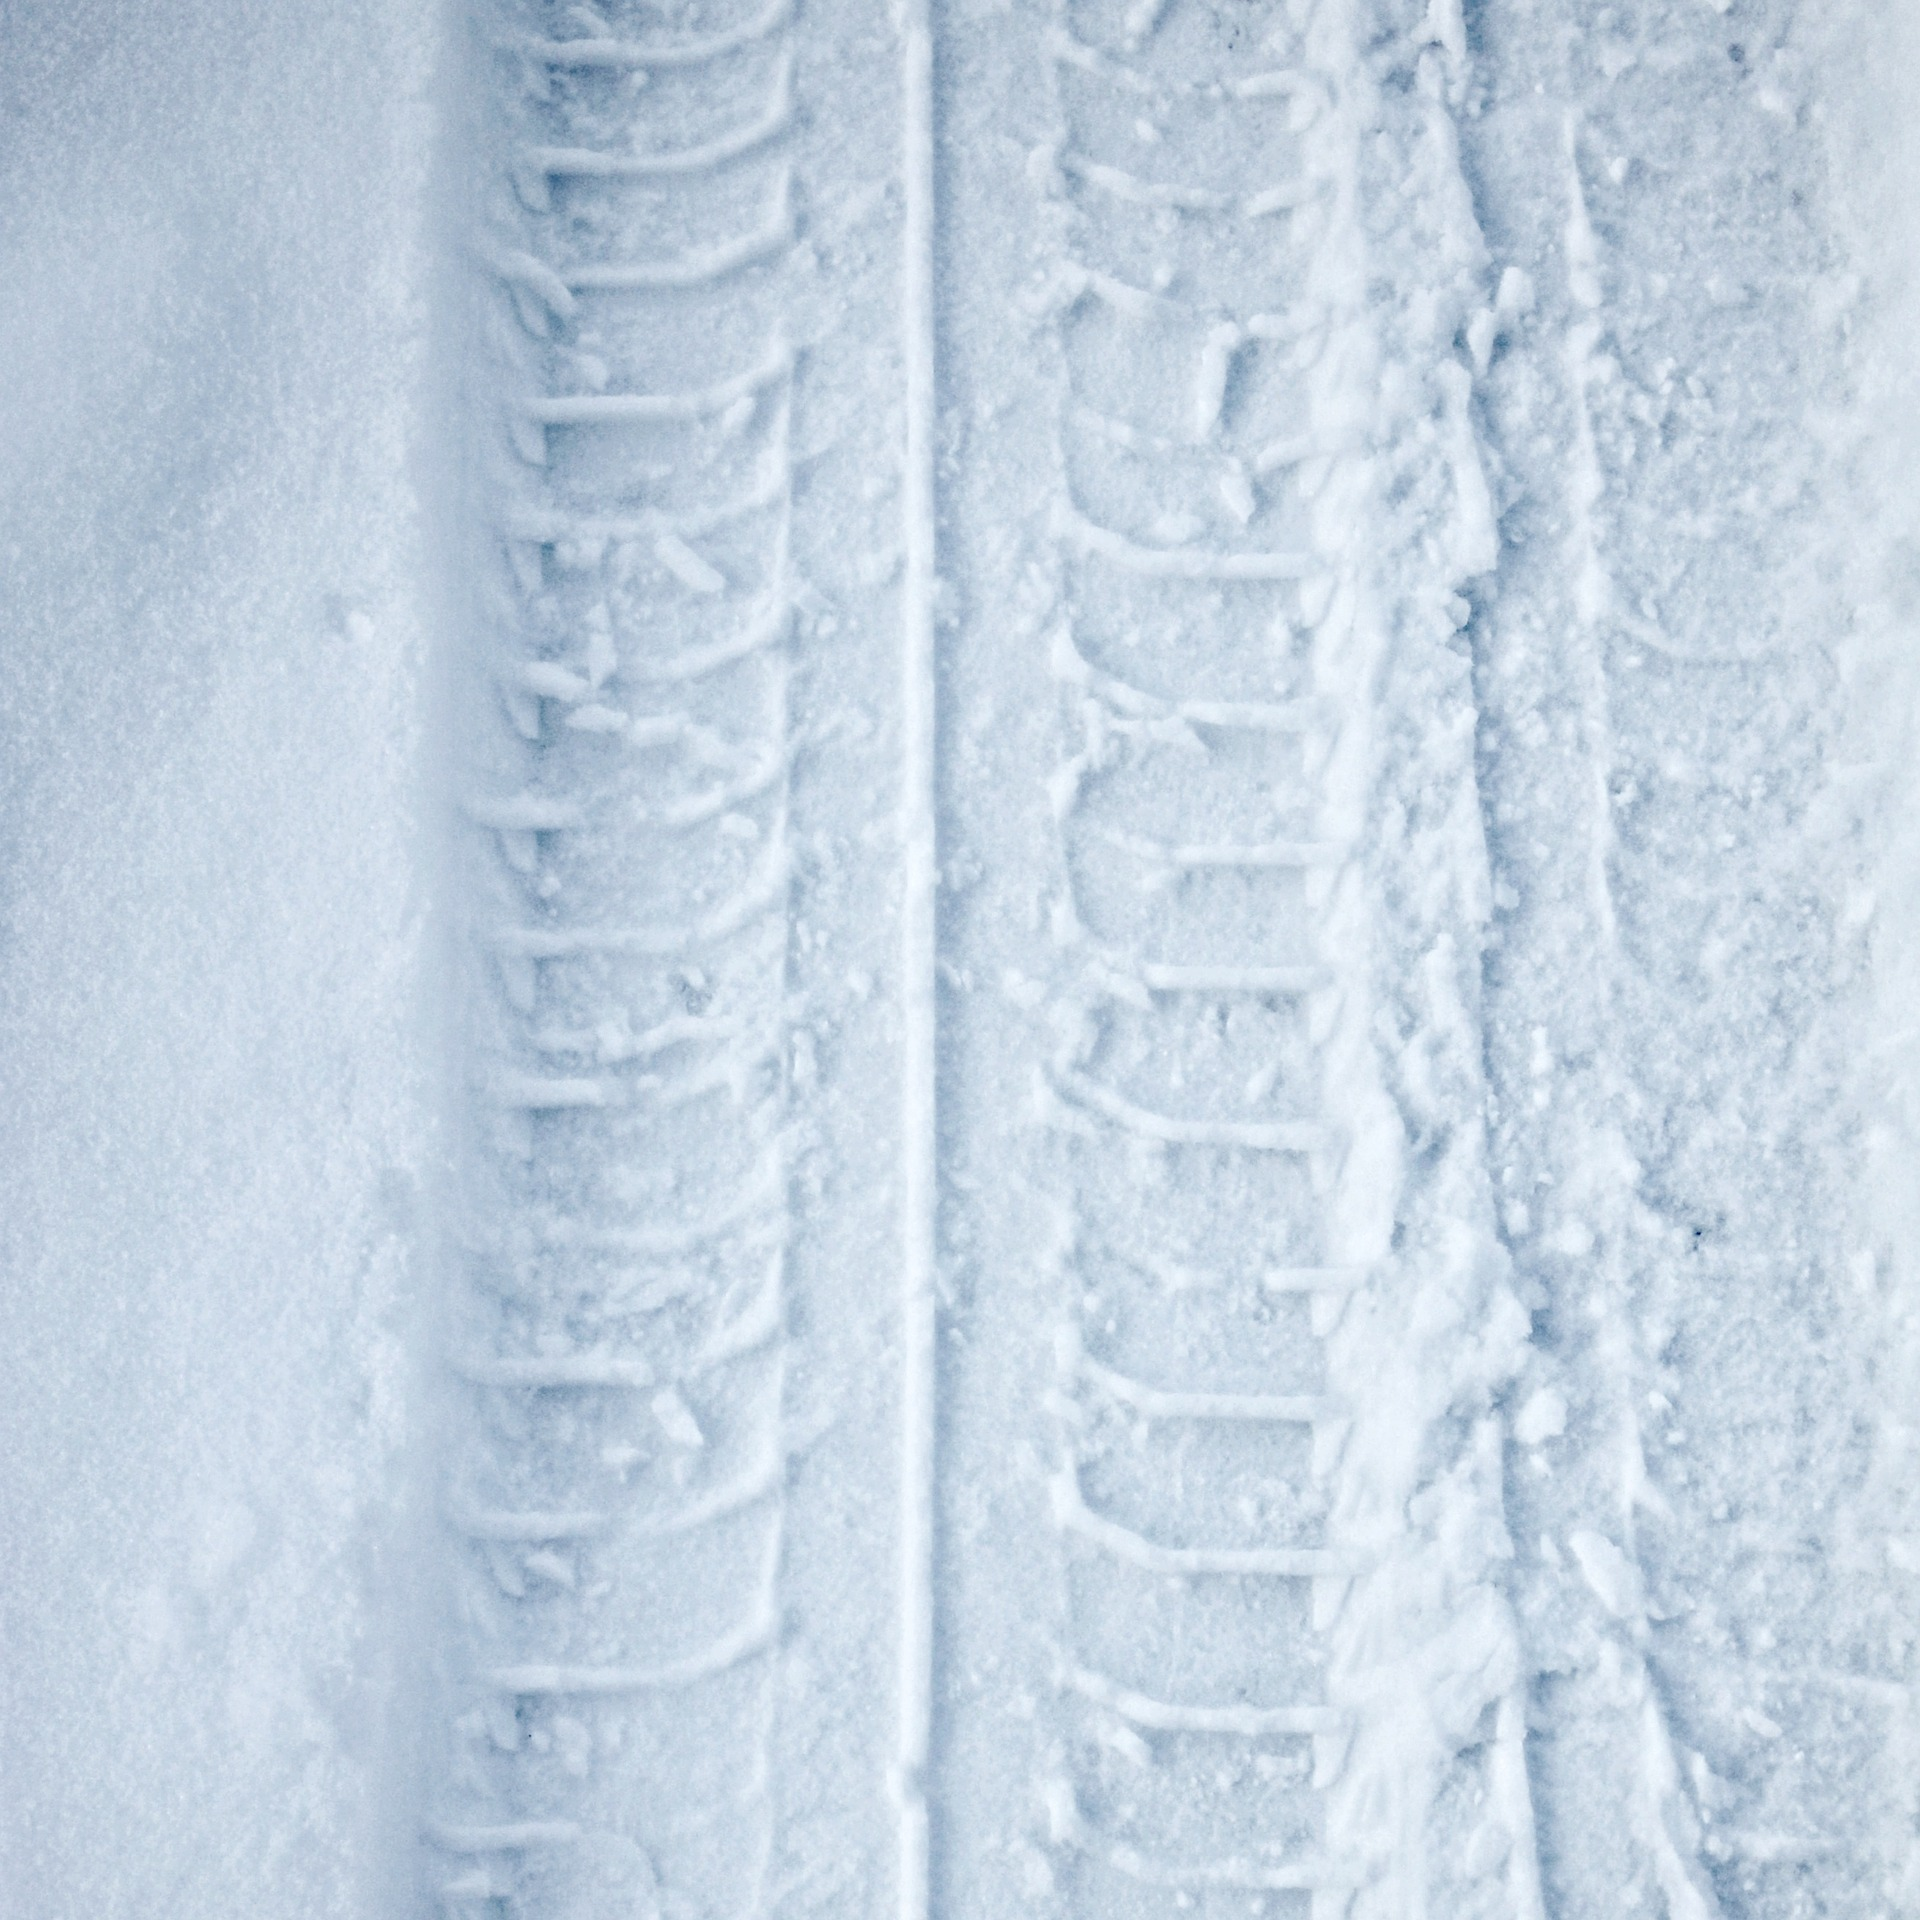 An image of a tyre track indented in the snow.